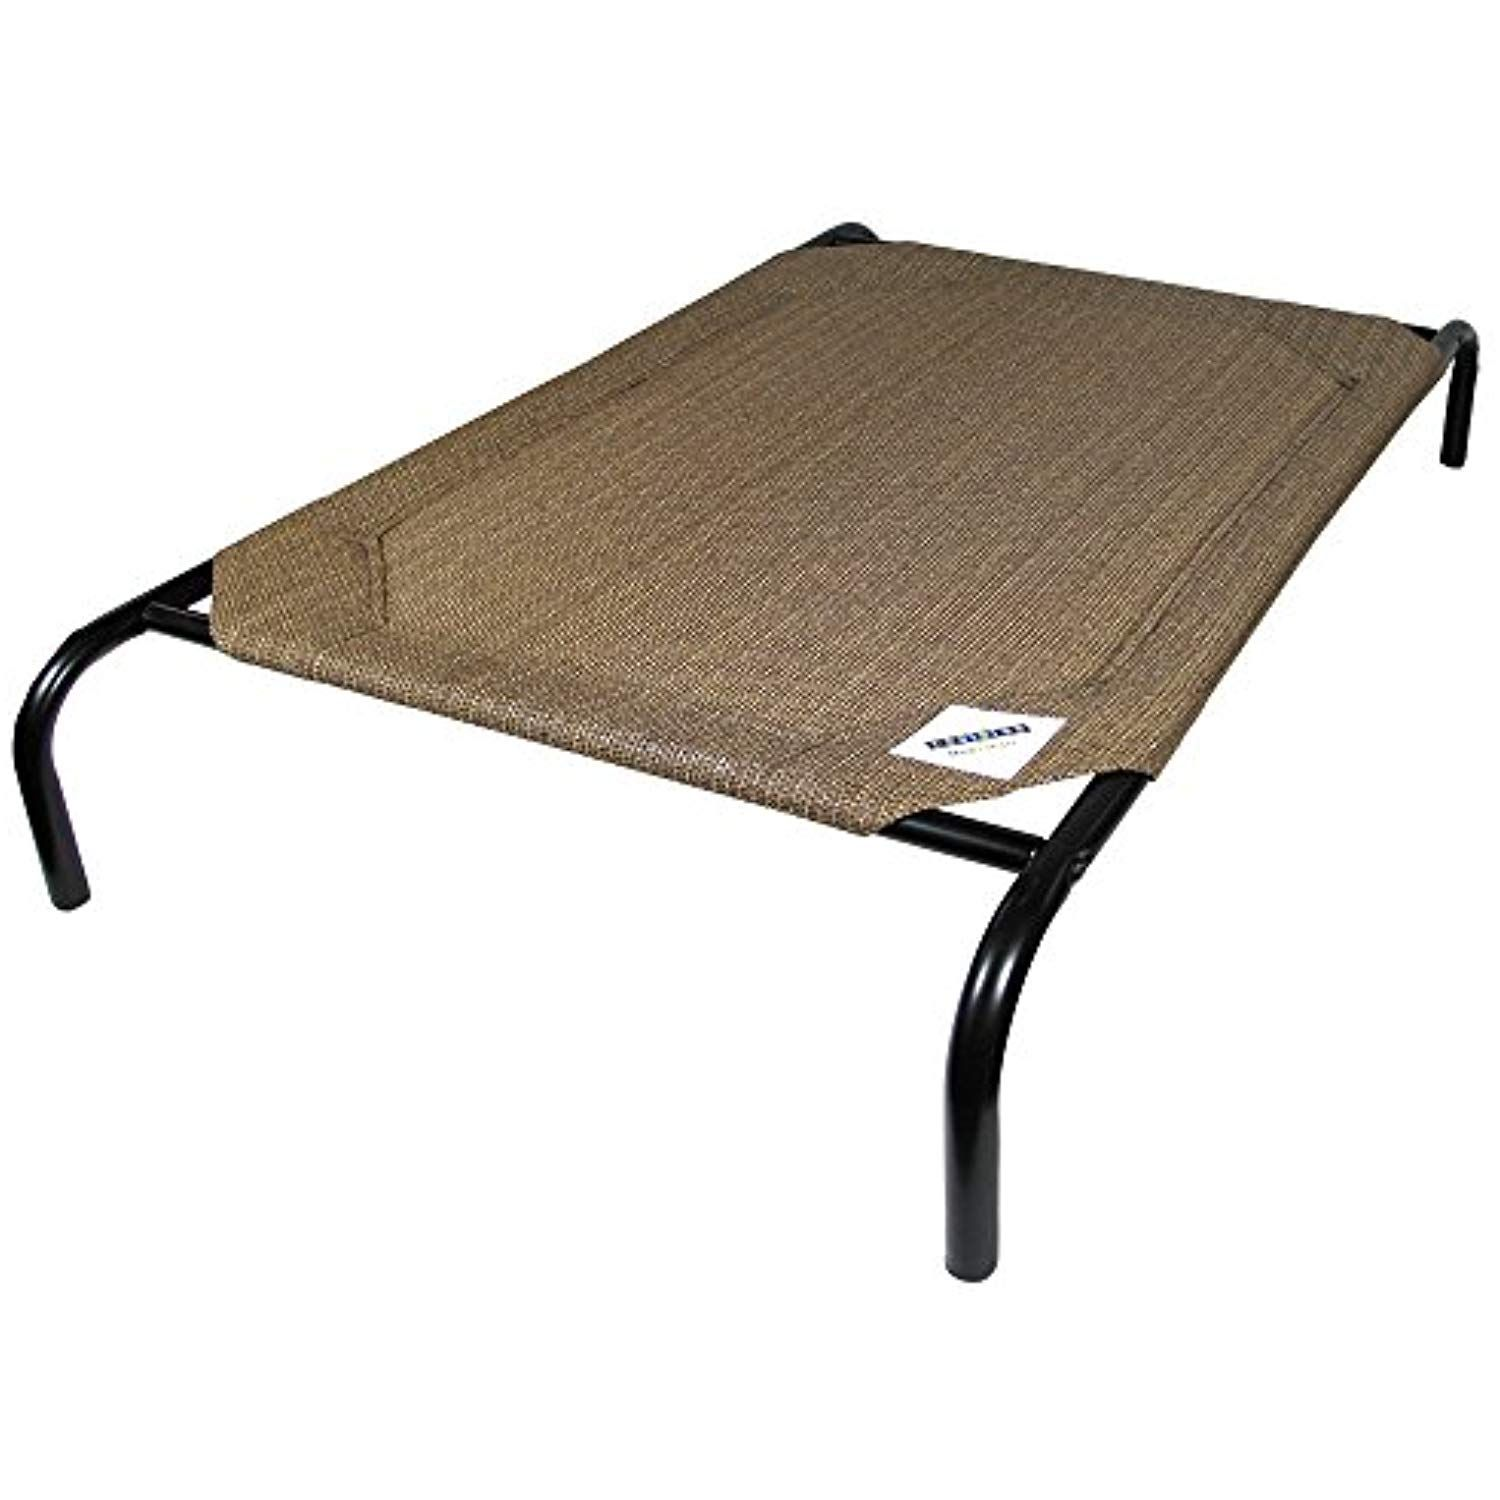 Coolaroo The Original Elevated Pet Bed By Small Nutmeg